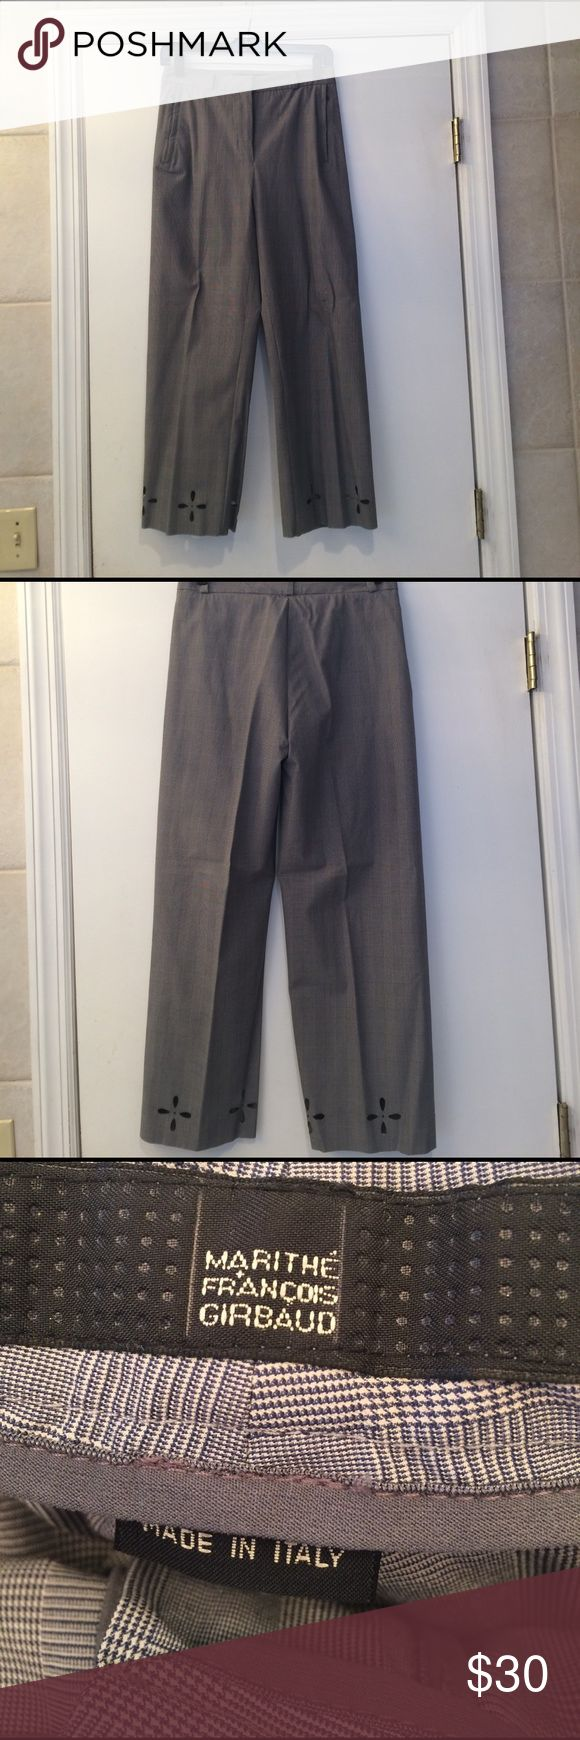 """Marithe Francois Girbaud cropped plaid pants sz 27 Black and white plead cropped pants, side slit zippered pockets, floral cutout at bottom. Belt loops. 61% cotton, 34% nylon, 5% spandex. Waist 14"""" across, inseam 25"""". Marithe Francois Girbaud Pants Ankle & Cropped"""